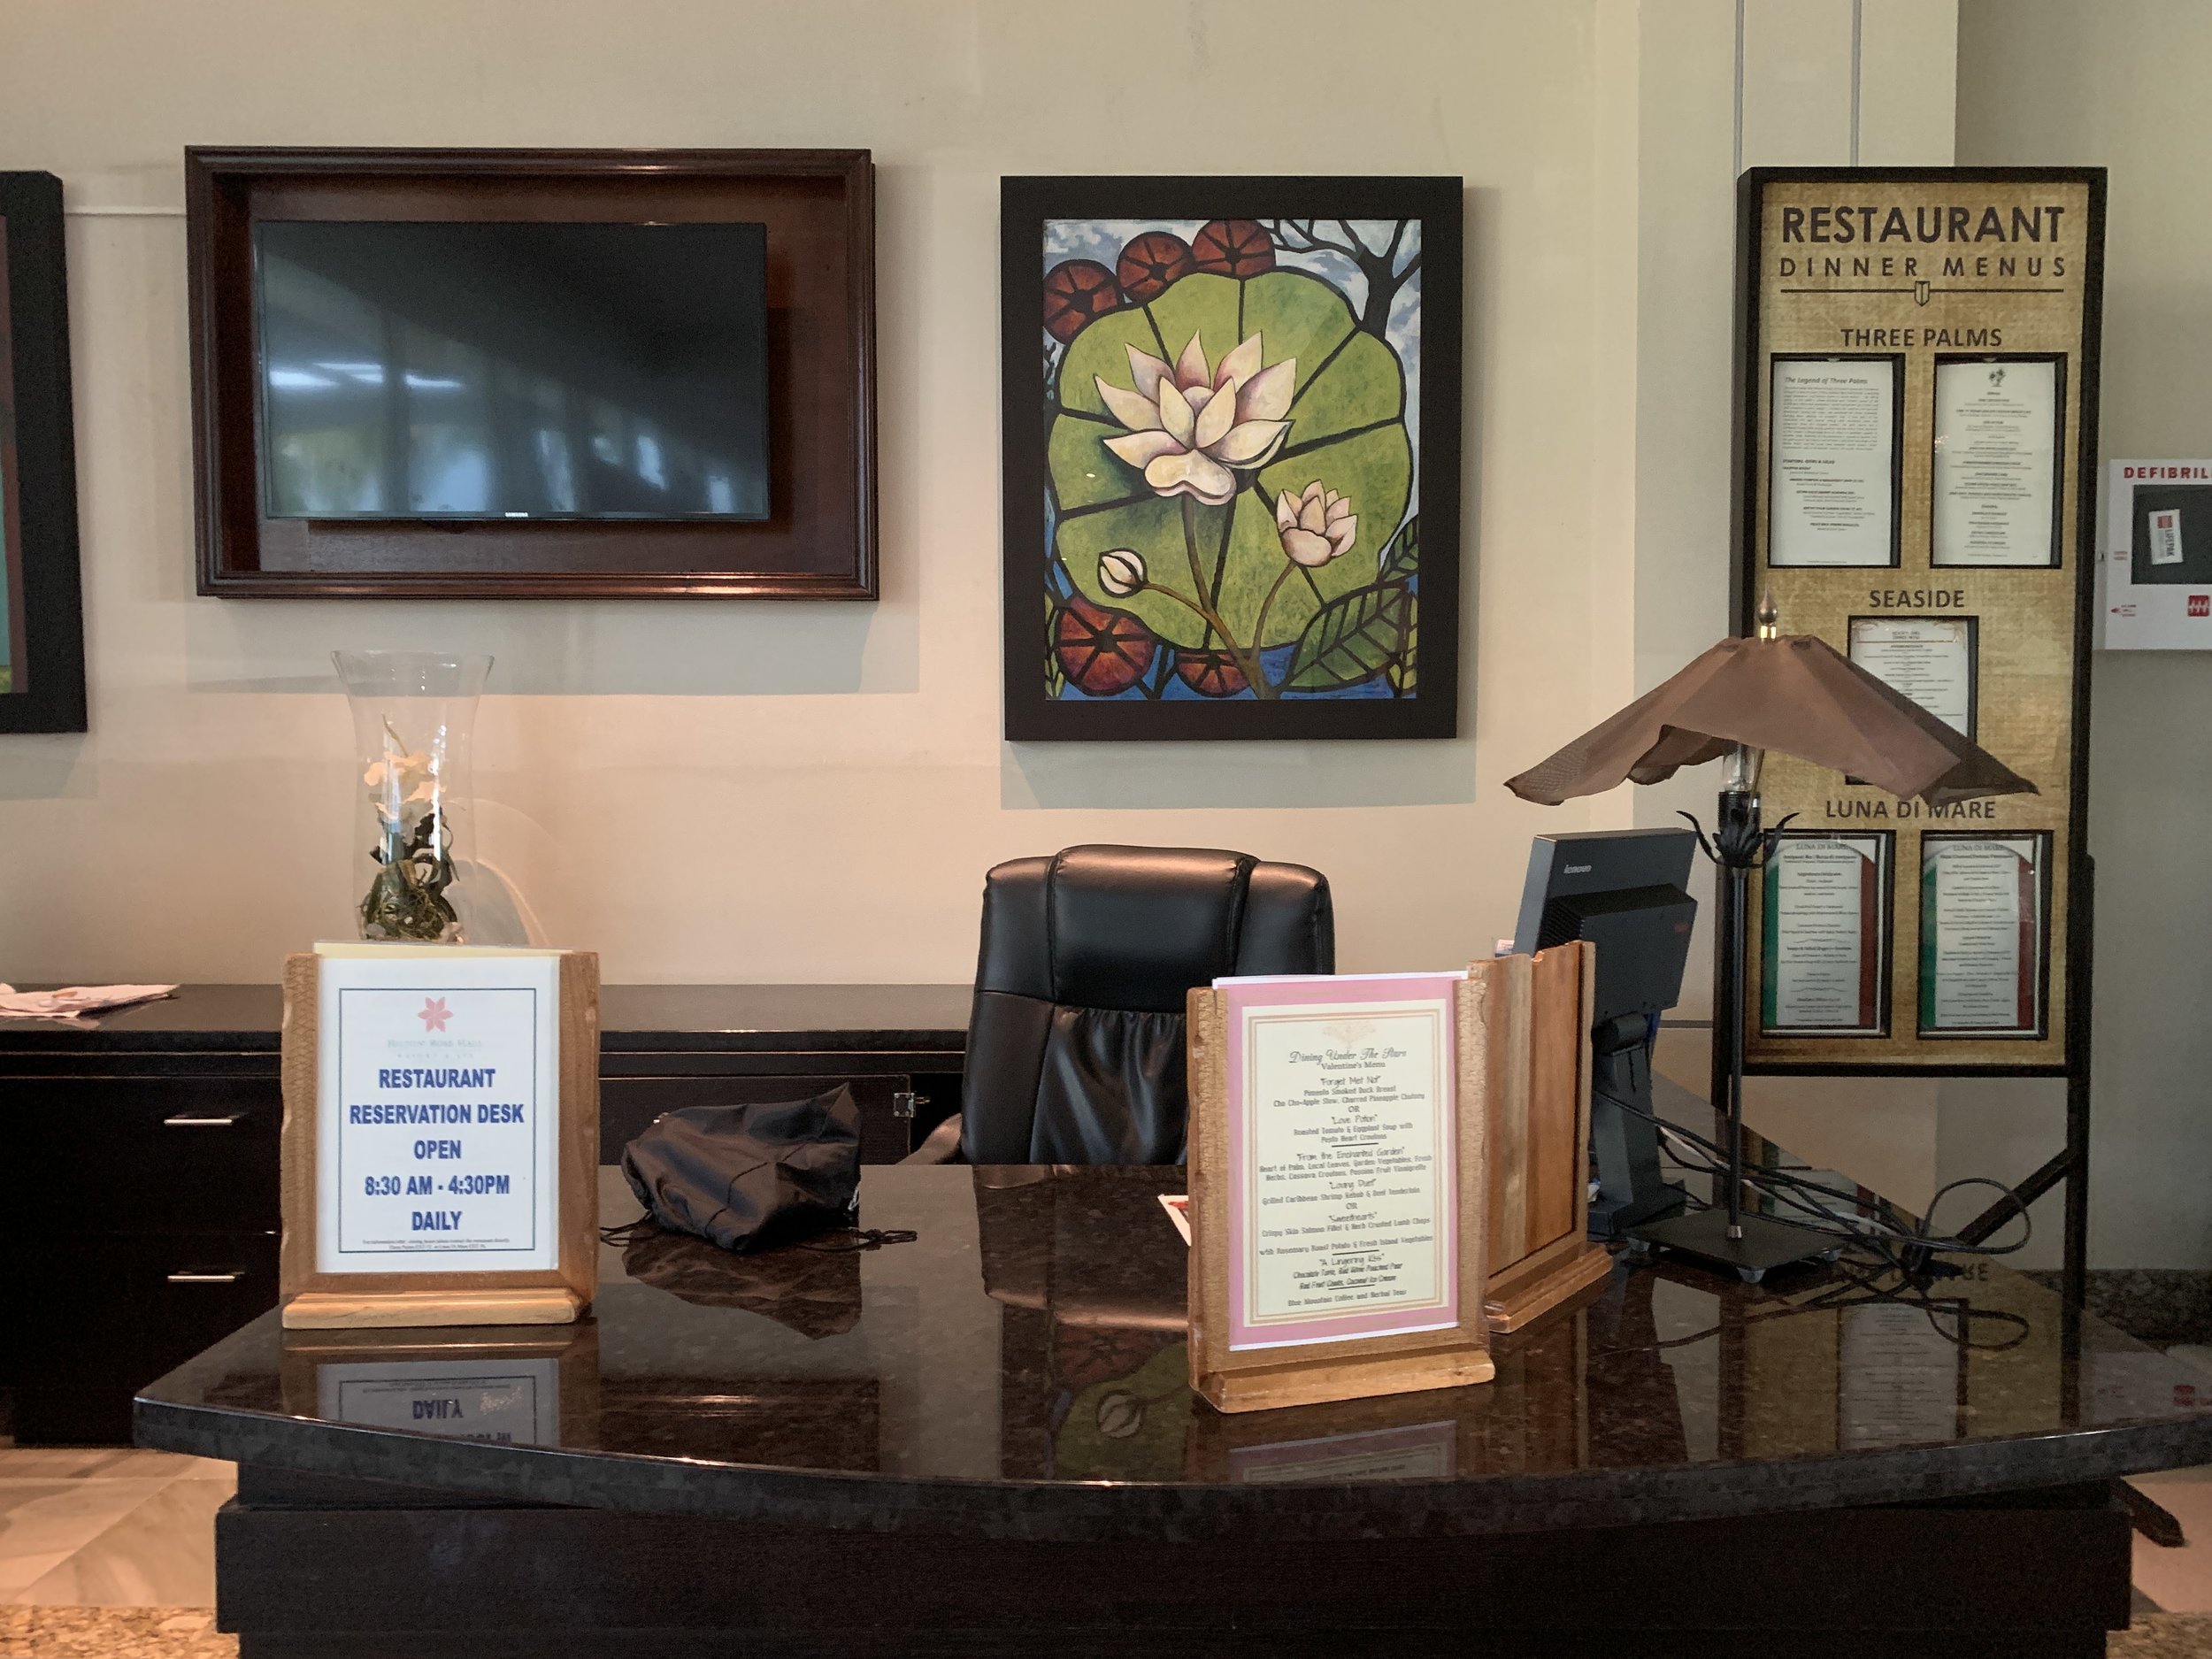 Closer look at the Dinner Reservations desk with operating hours - 8:30am-4:30pm daily